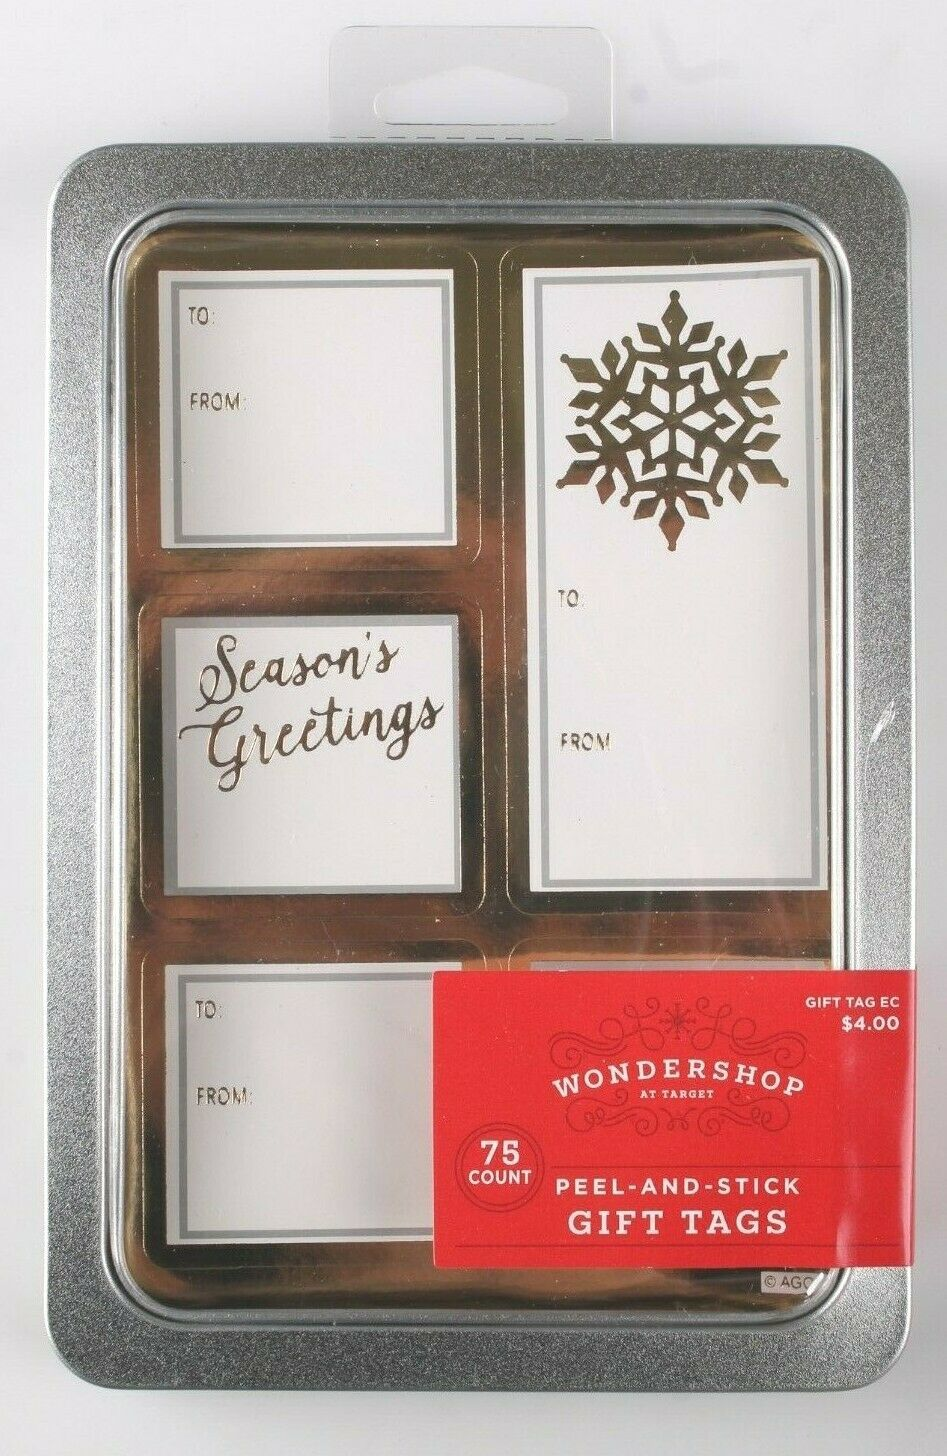 Season's Greetings 75 Count Peel & Stick Christmas Gift Tags To From Sticker NEW